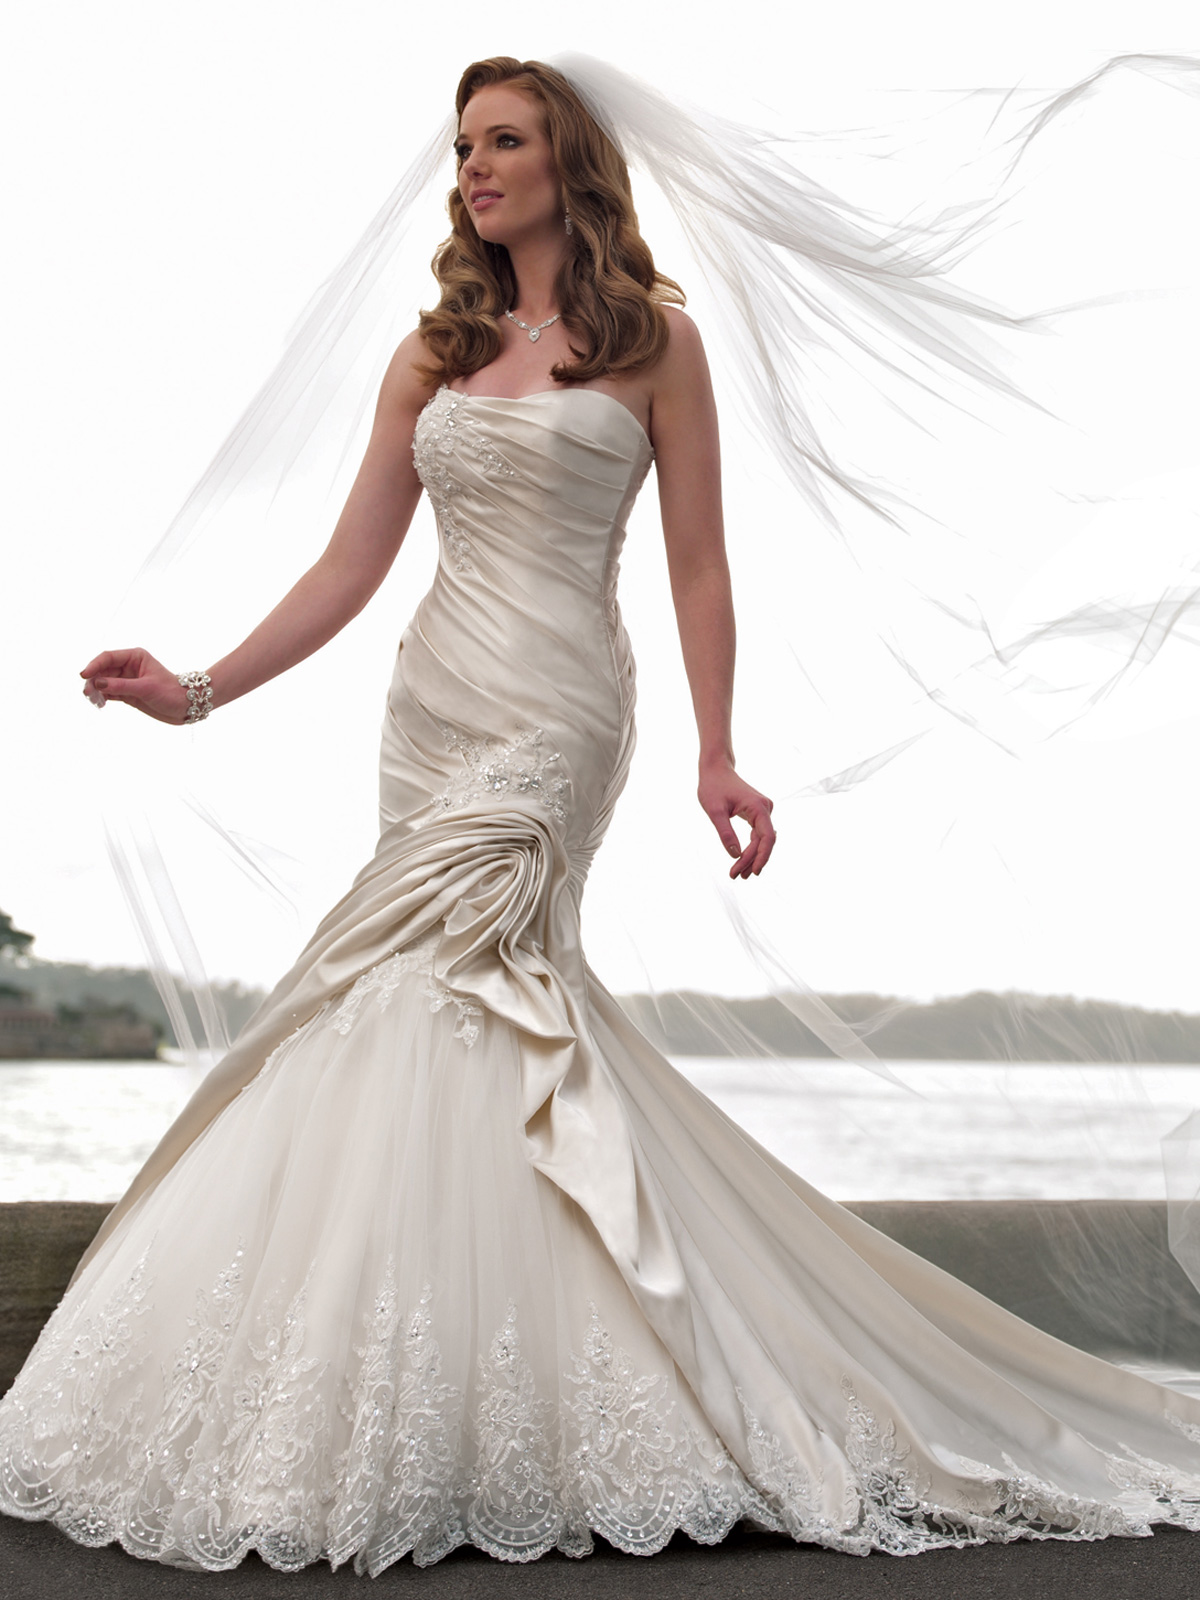 Mermaid Wedding Gown With Fluted Skirt